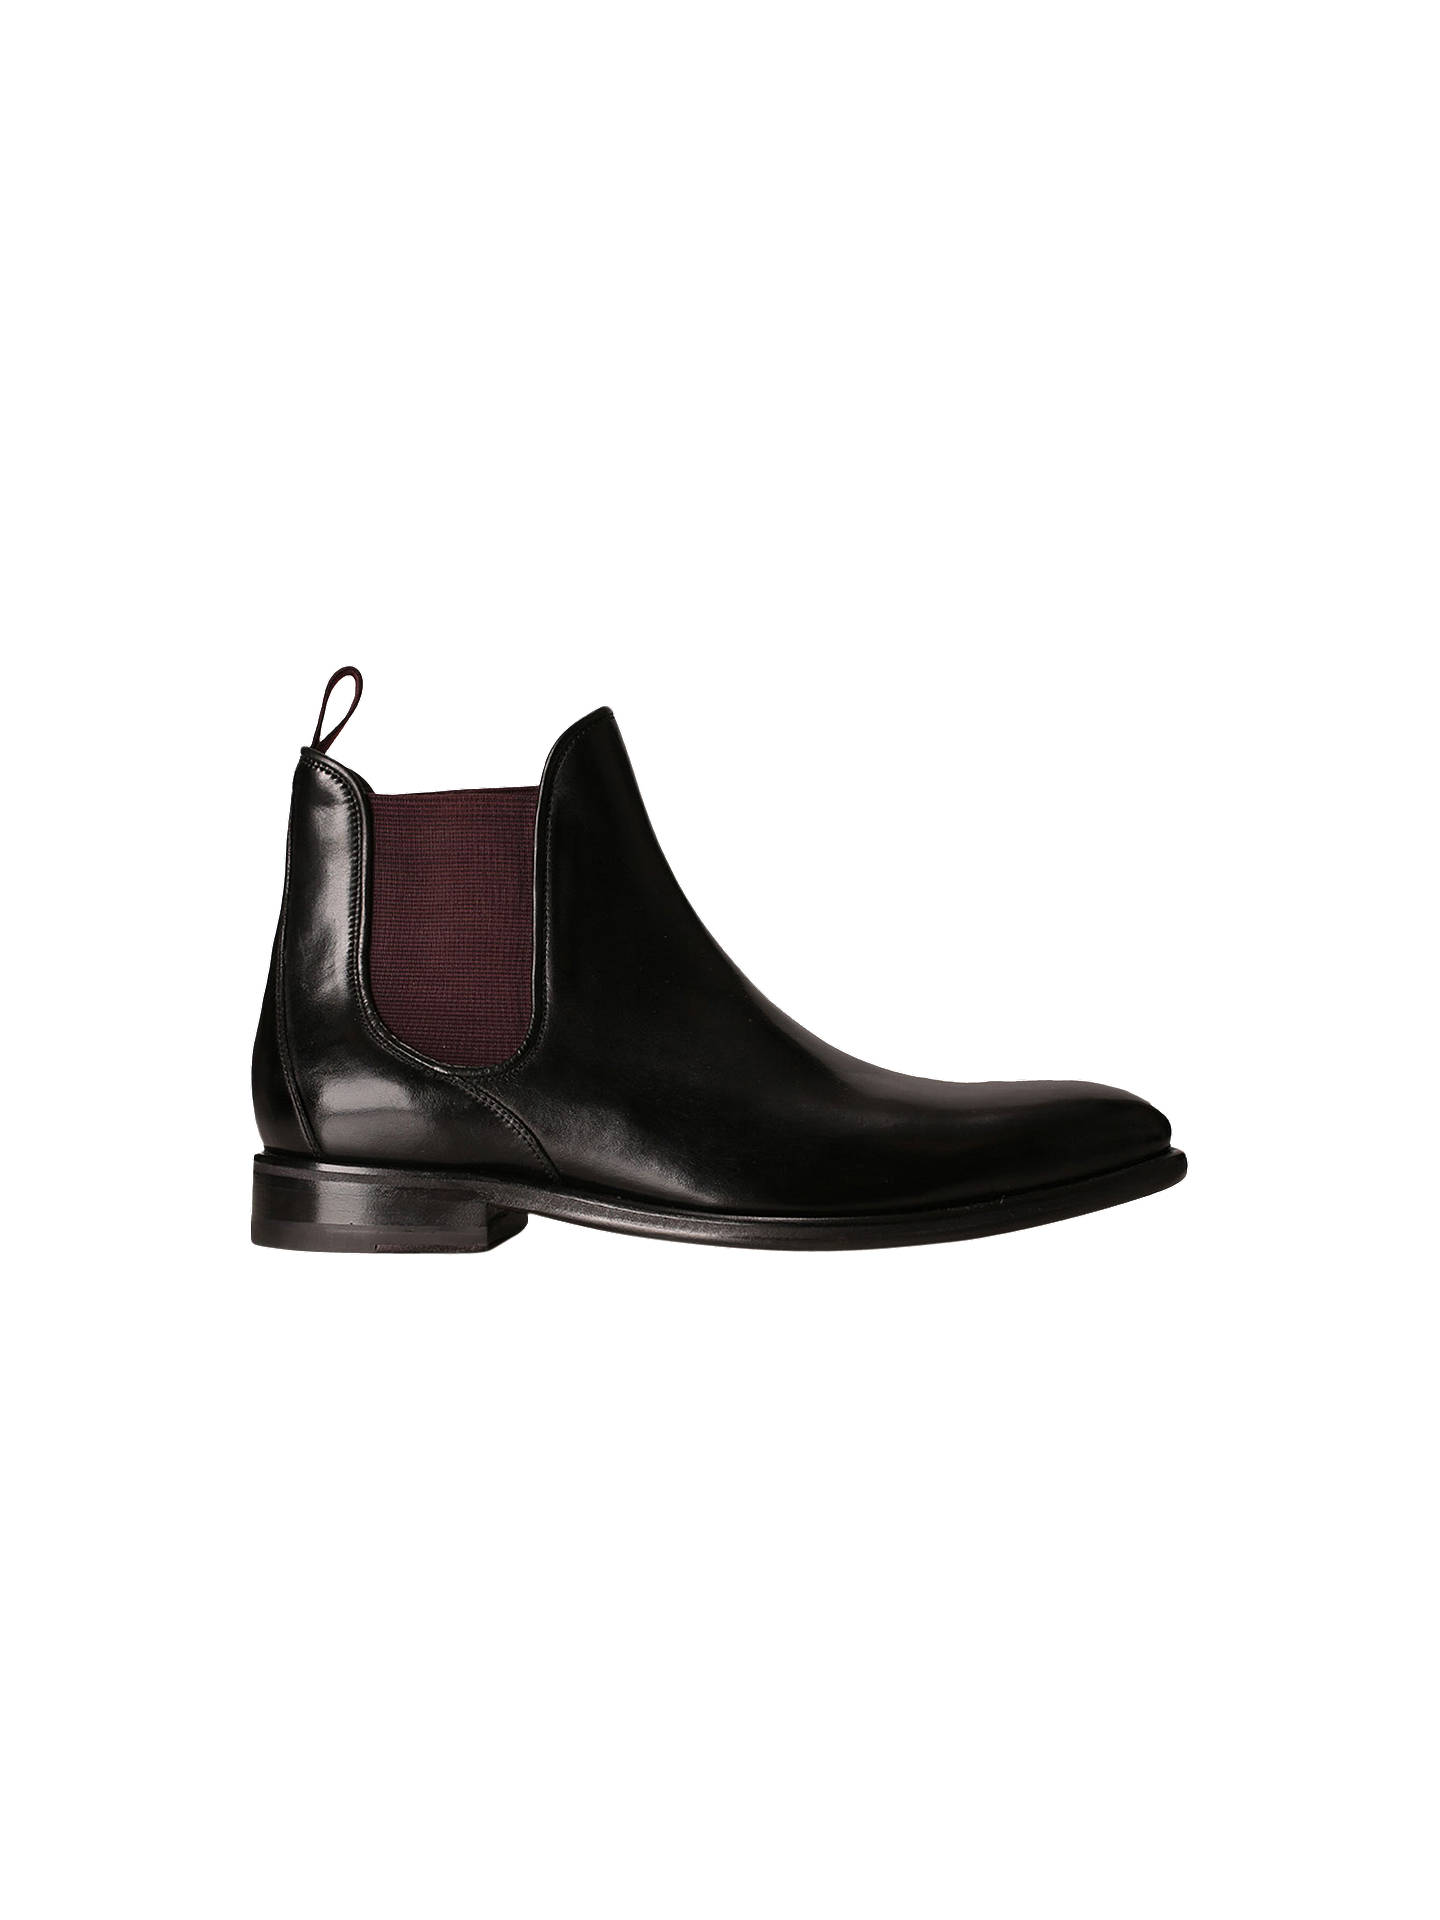 442bf2580 Oliver Sweeney Allegro Chelsea Boots, Black at John Lewis & Partners